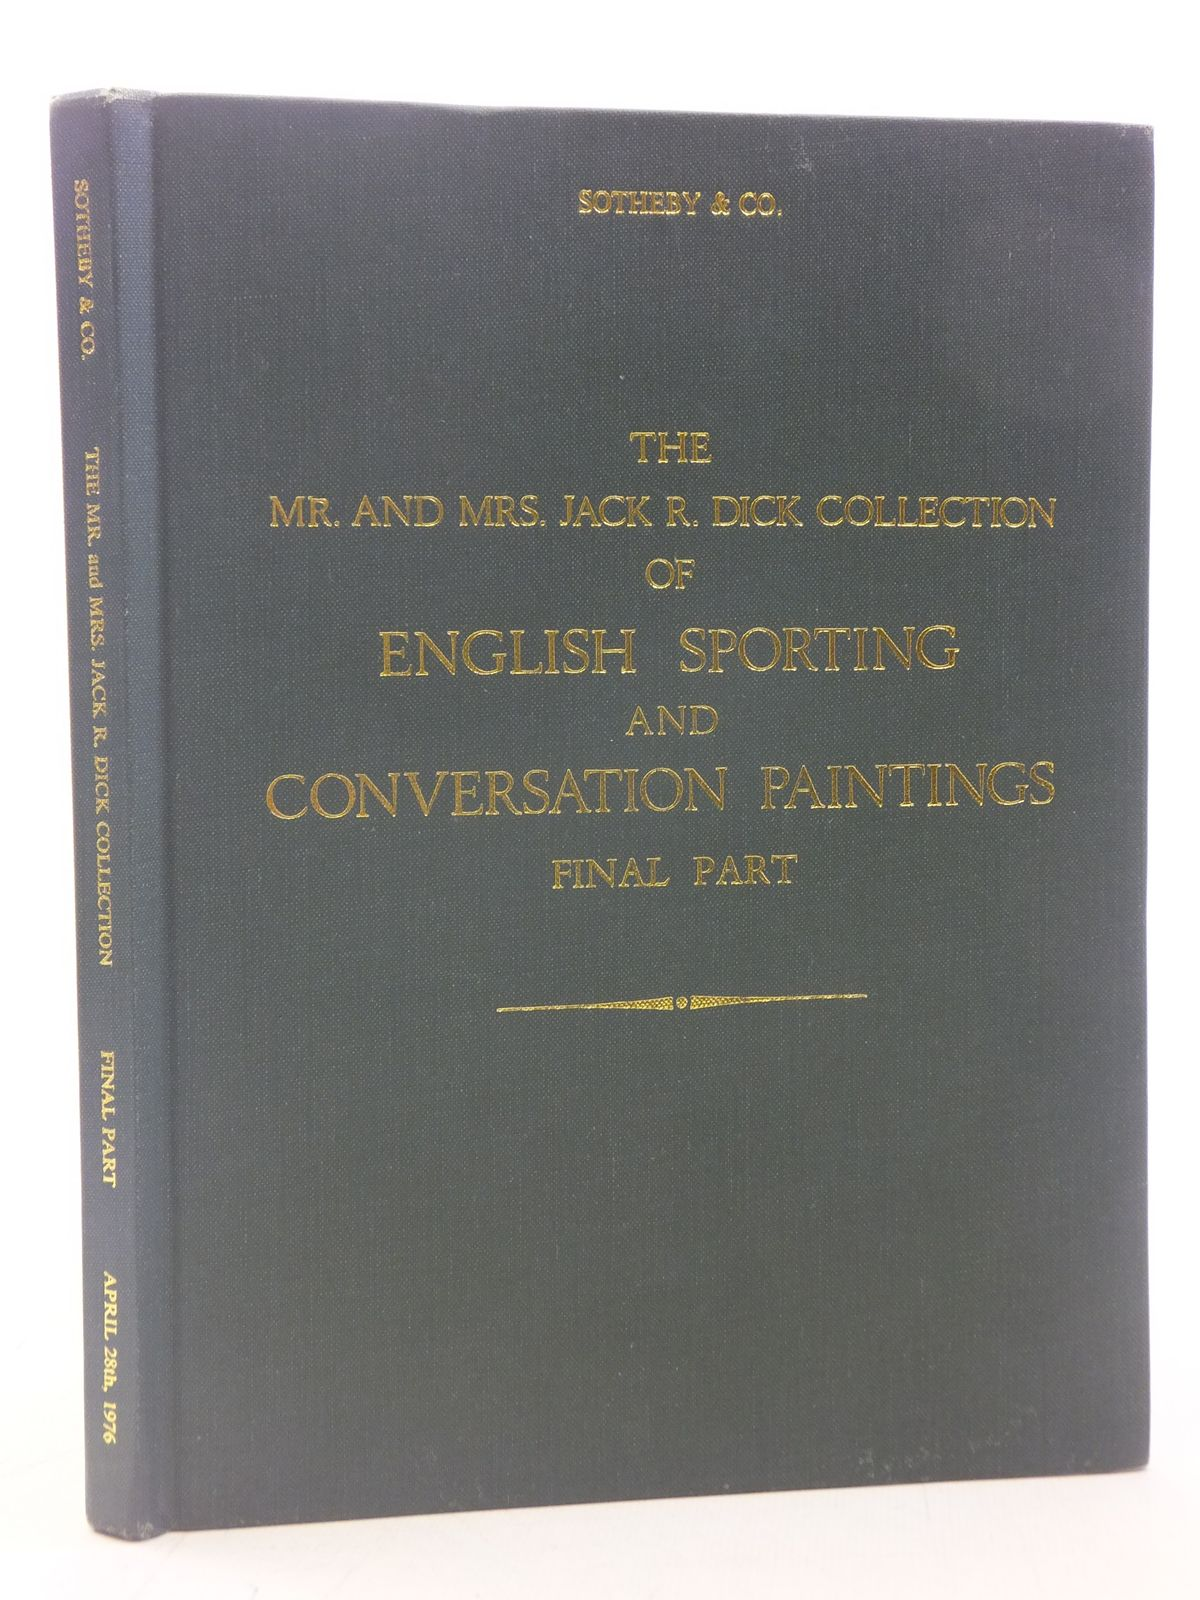 Photo of CATALOGUE OF THE MR. AND MRS. JACK R. DICK COLLECTION OF ENGLISH SPORTING AND CONVERSATION PAINTINGS FINAL PART published by Sotheby Parke Bernet (STOCK CODE: 1605950)  for sale by Stella & Rose's Books